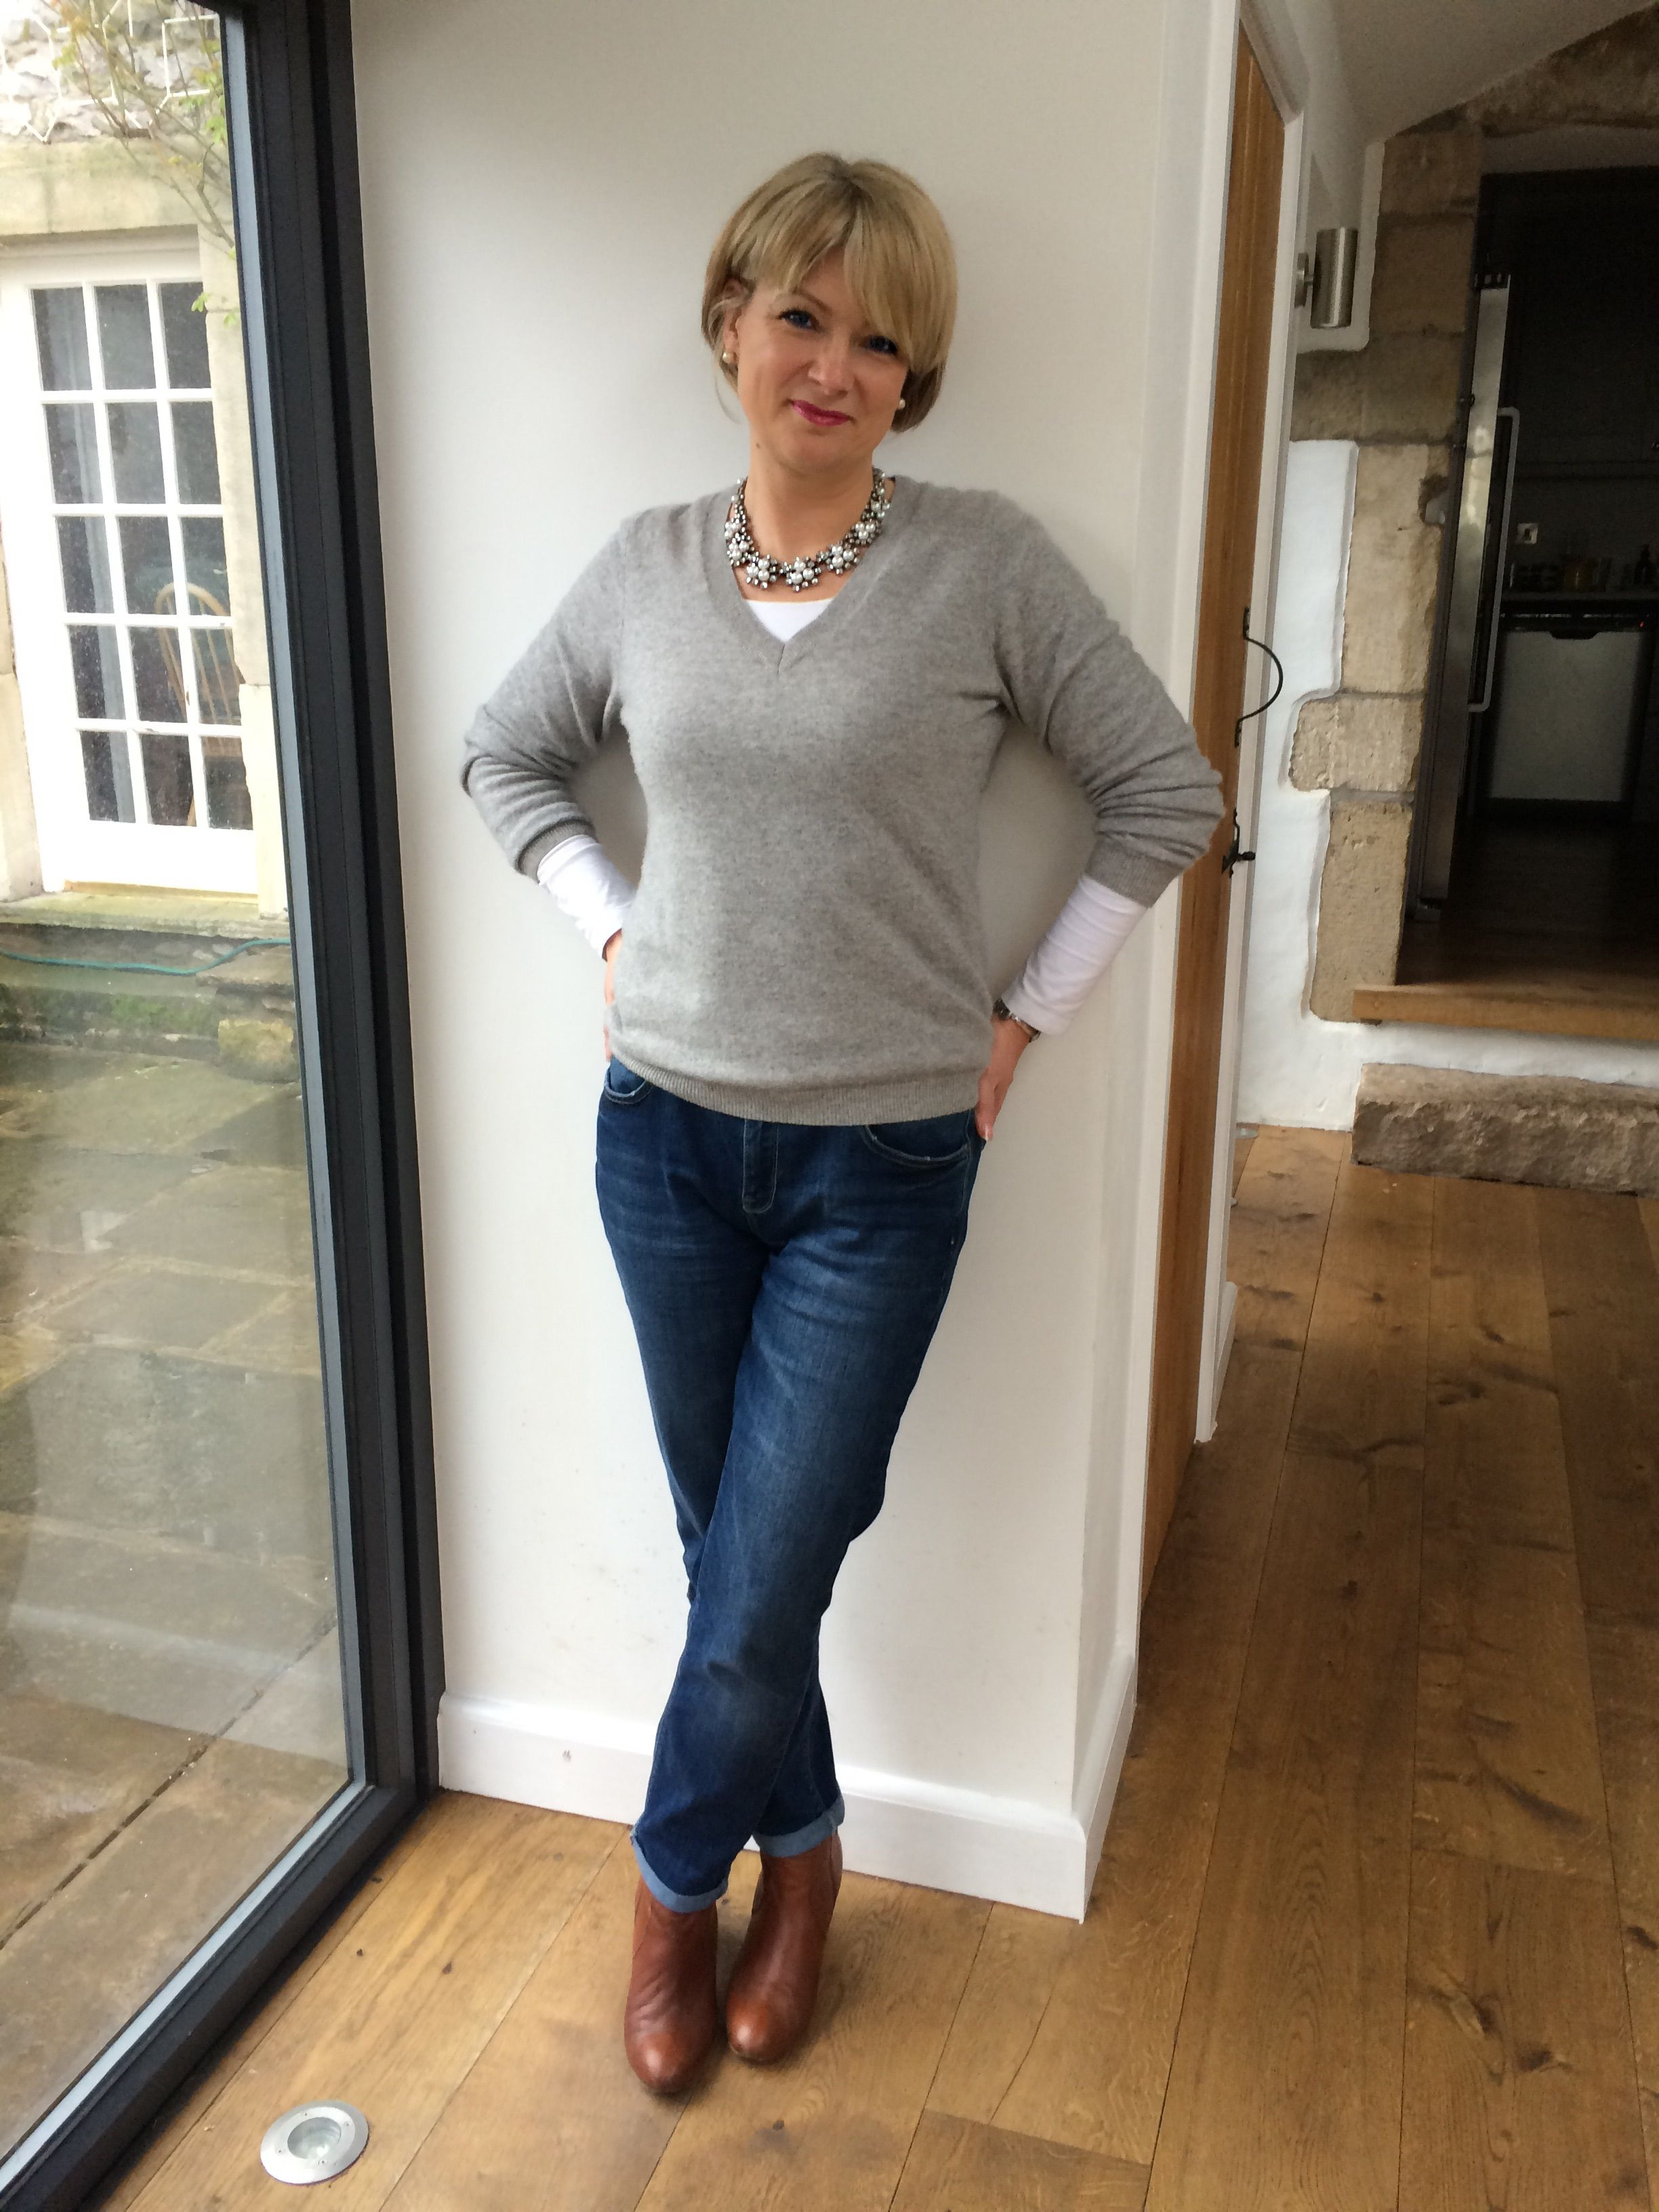 Easter Week Chic | Hard days, Grey sweater and For women